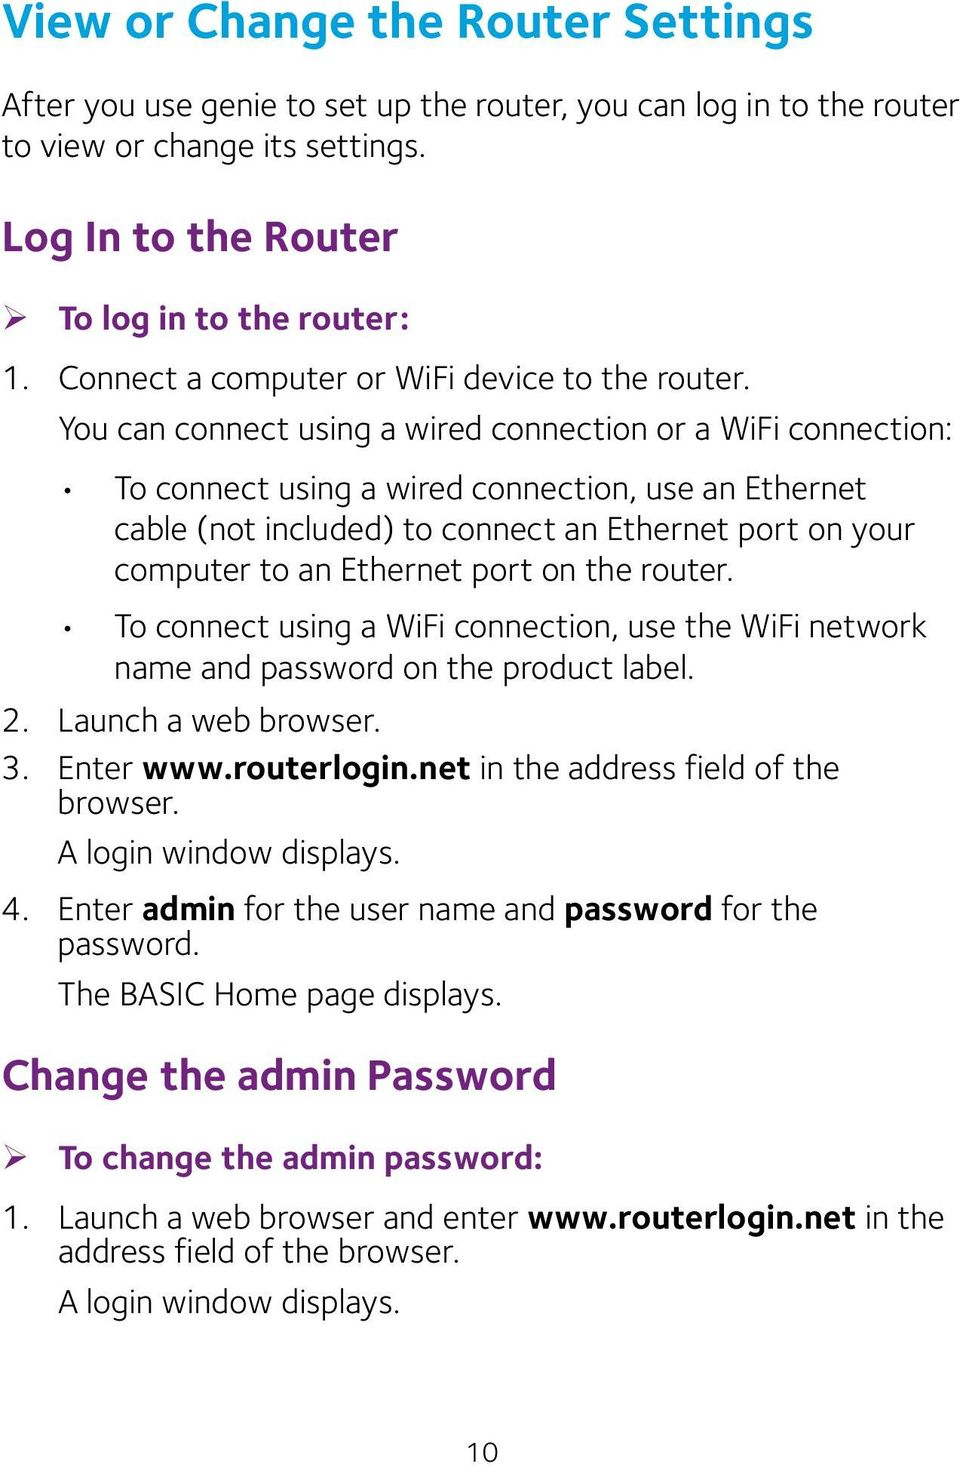 You can connect using a wired connection or a WiFi connection: To connect using a wired connection, use an Ethernet cable (not included) to connect an Ethernet port on your computer to an Ethernet